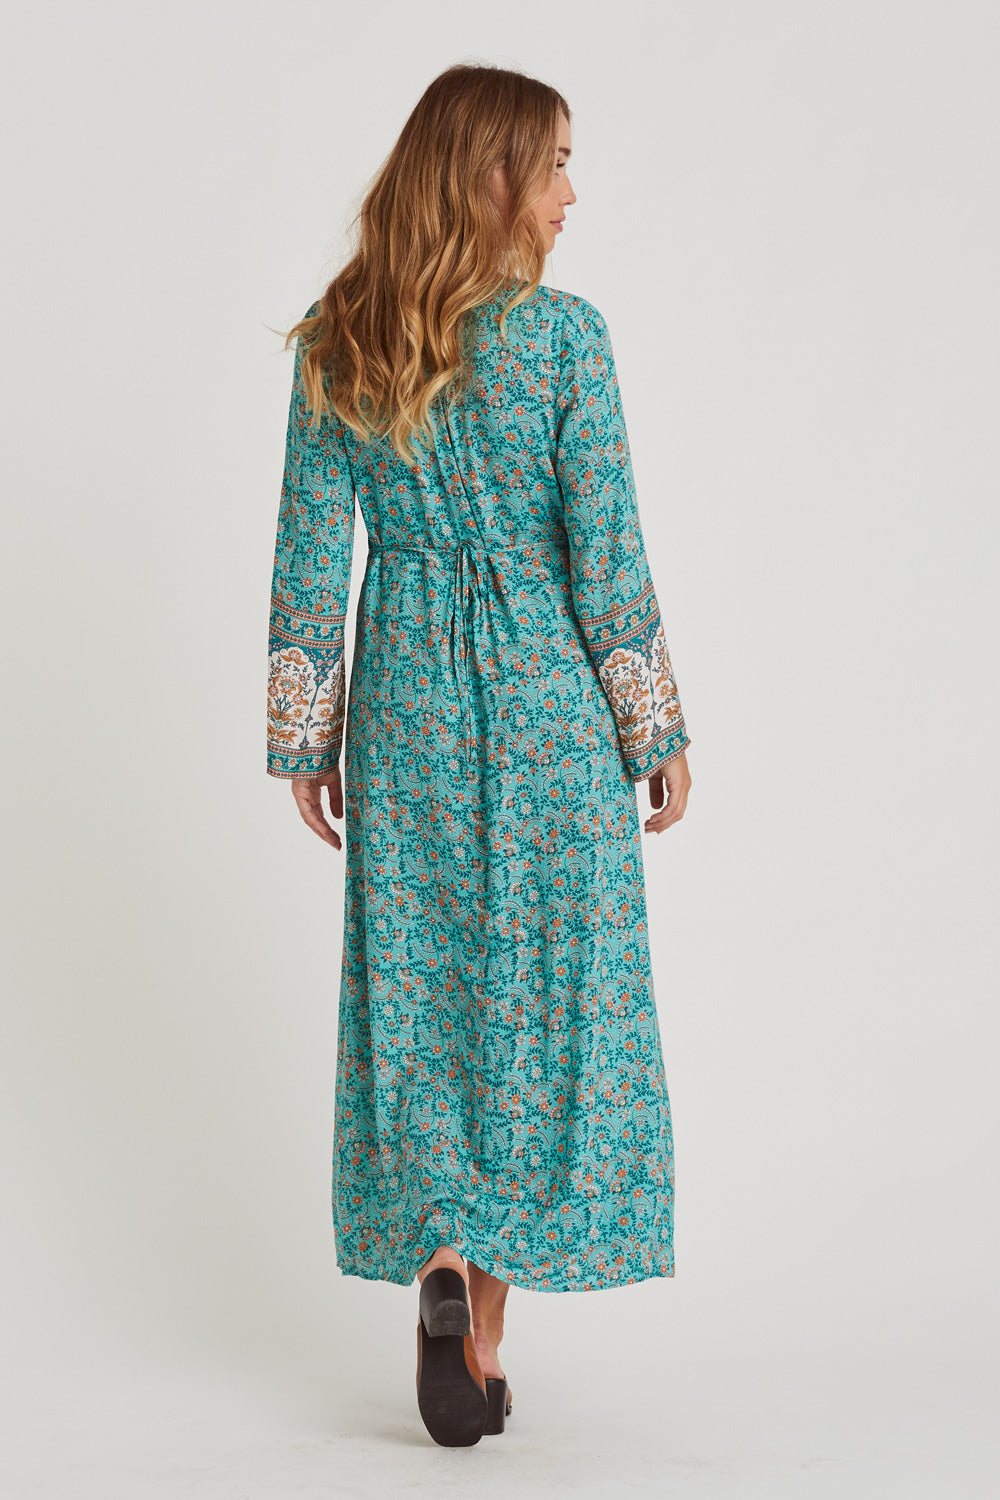 Fleetwood Duster Dress in Greenfields